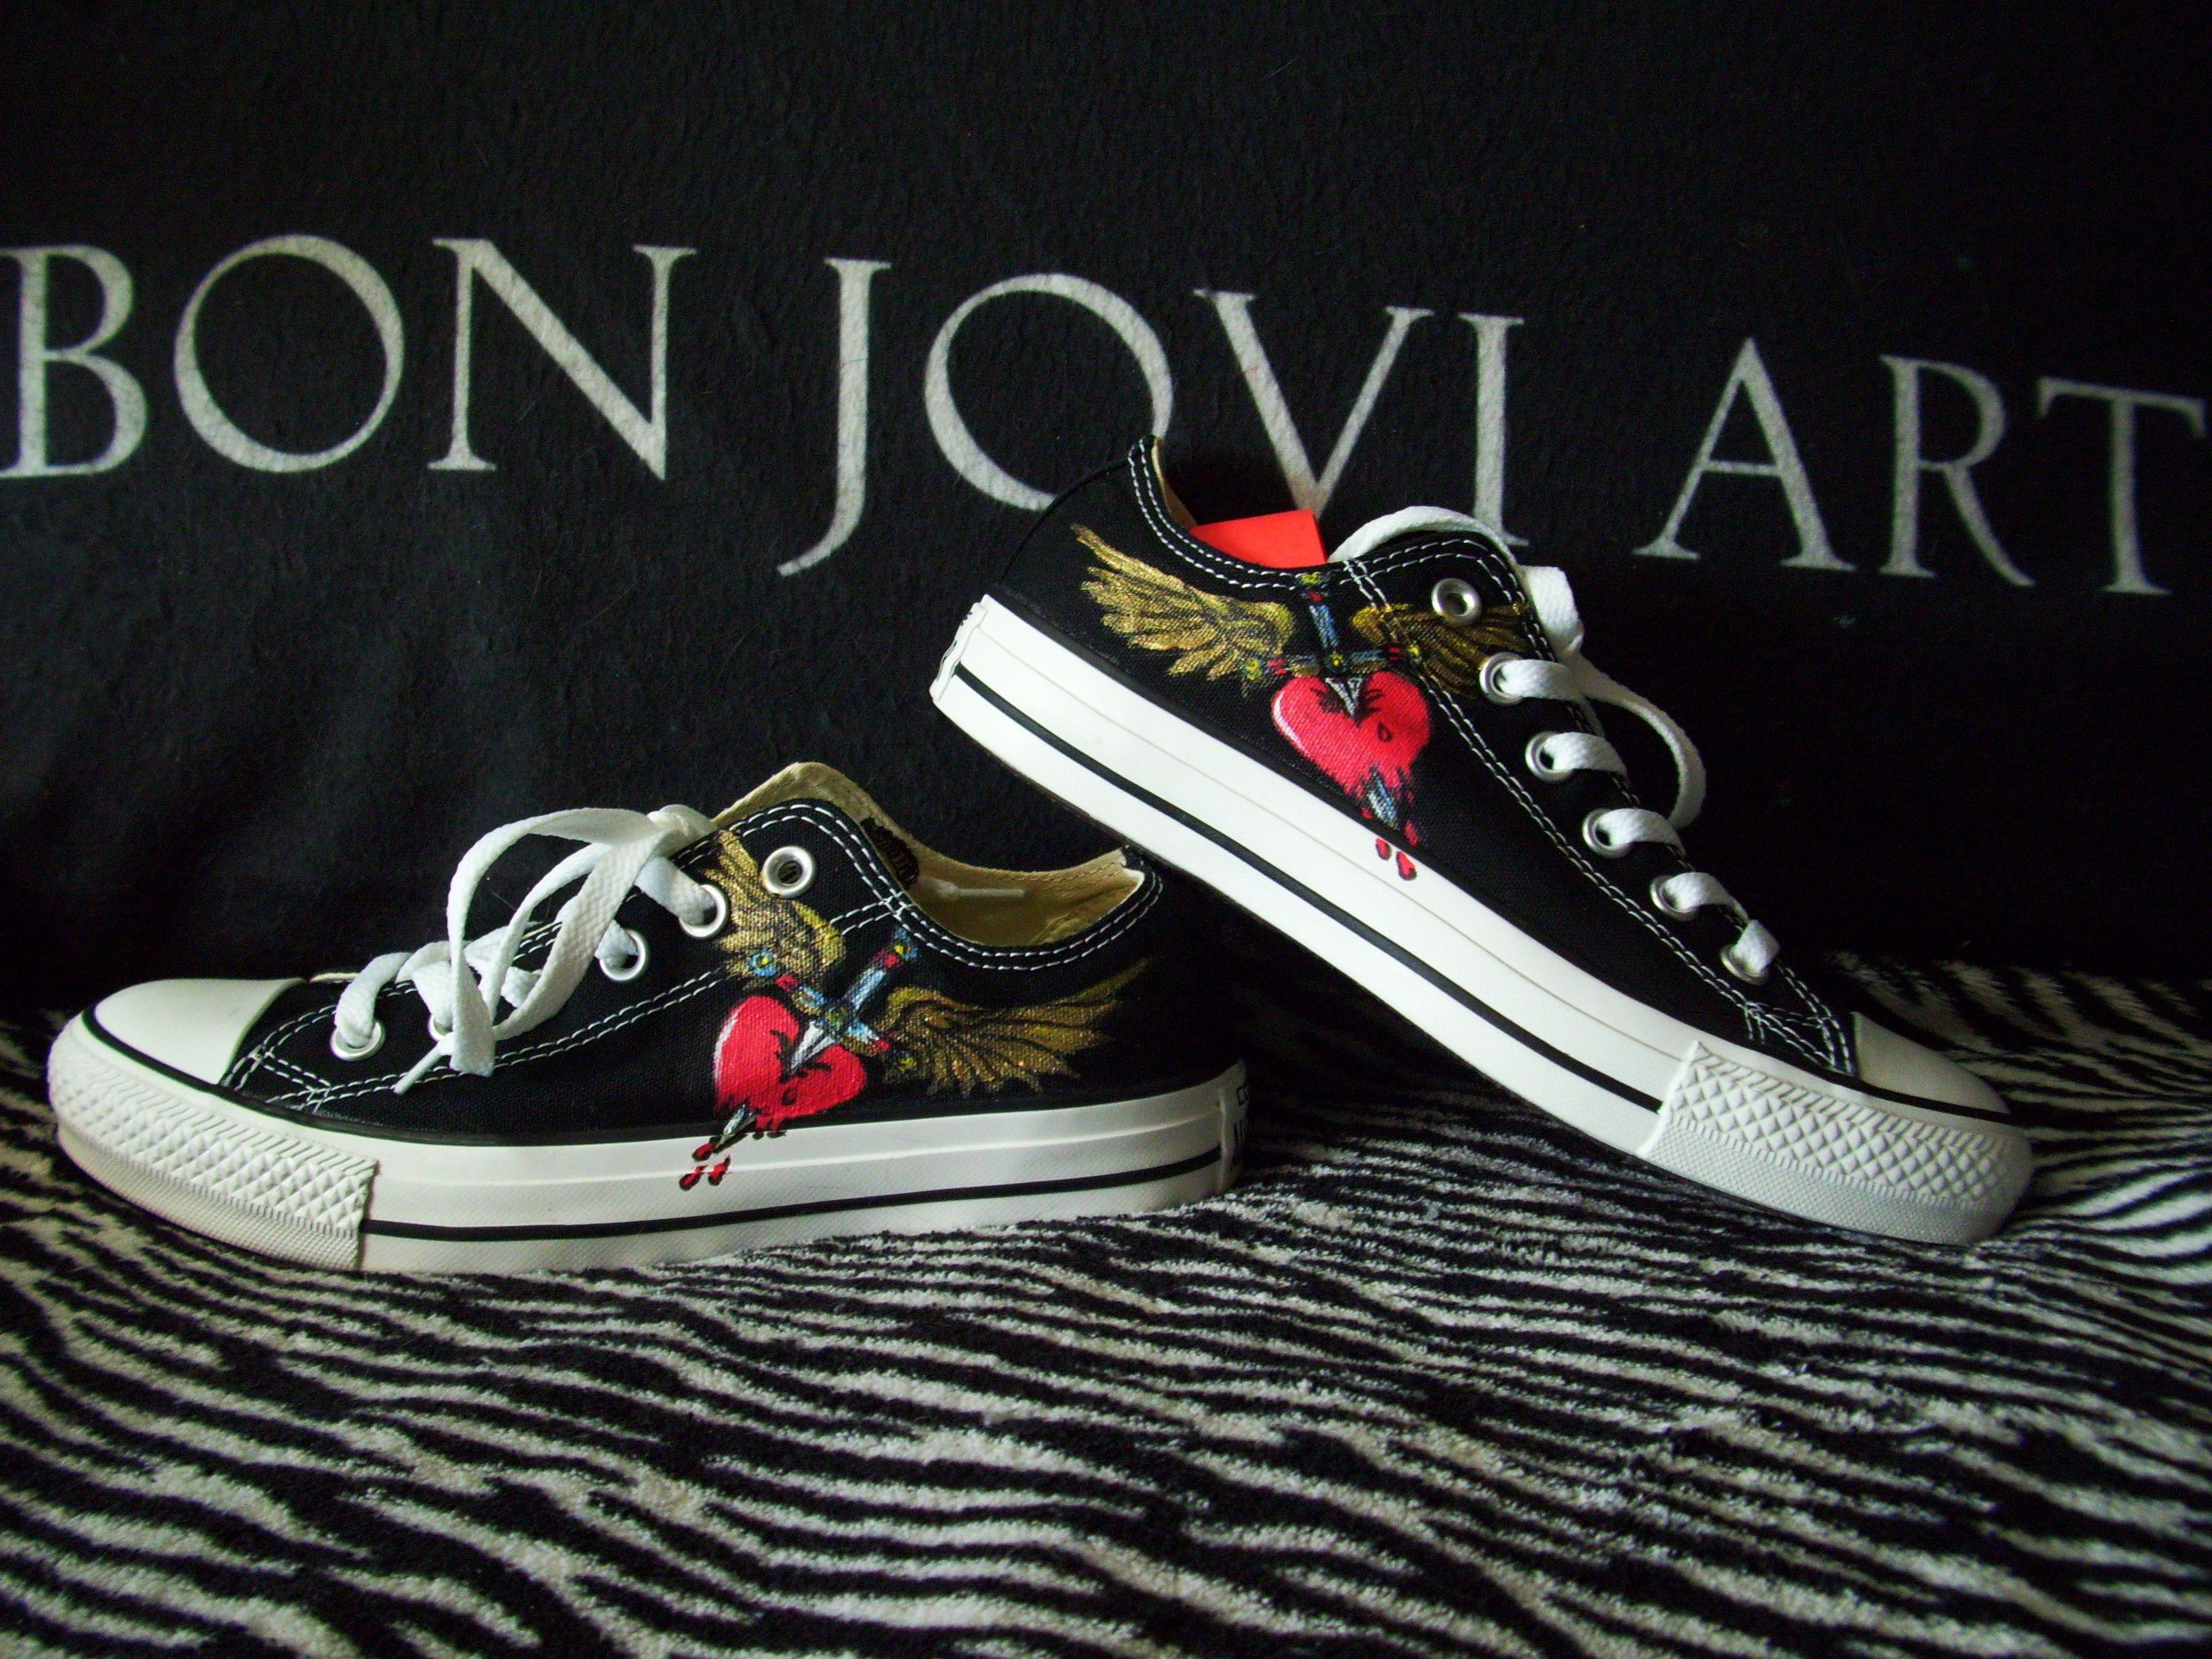 f184f3ab21c91 Hand painted bon jovi converse shoes | My Bon Jovi Art Paintings ...